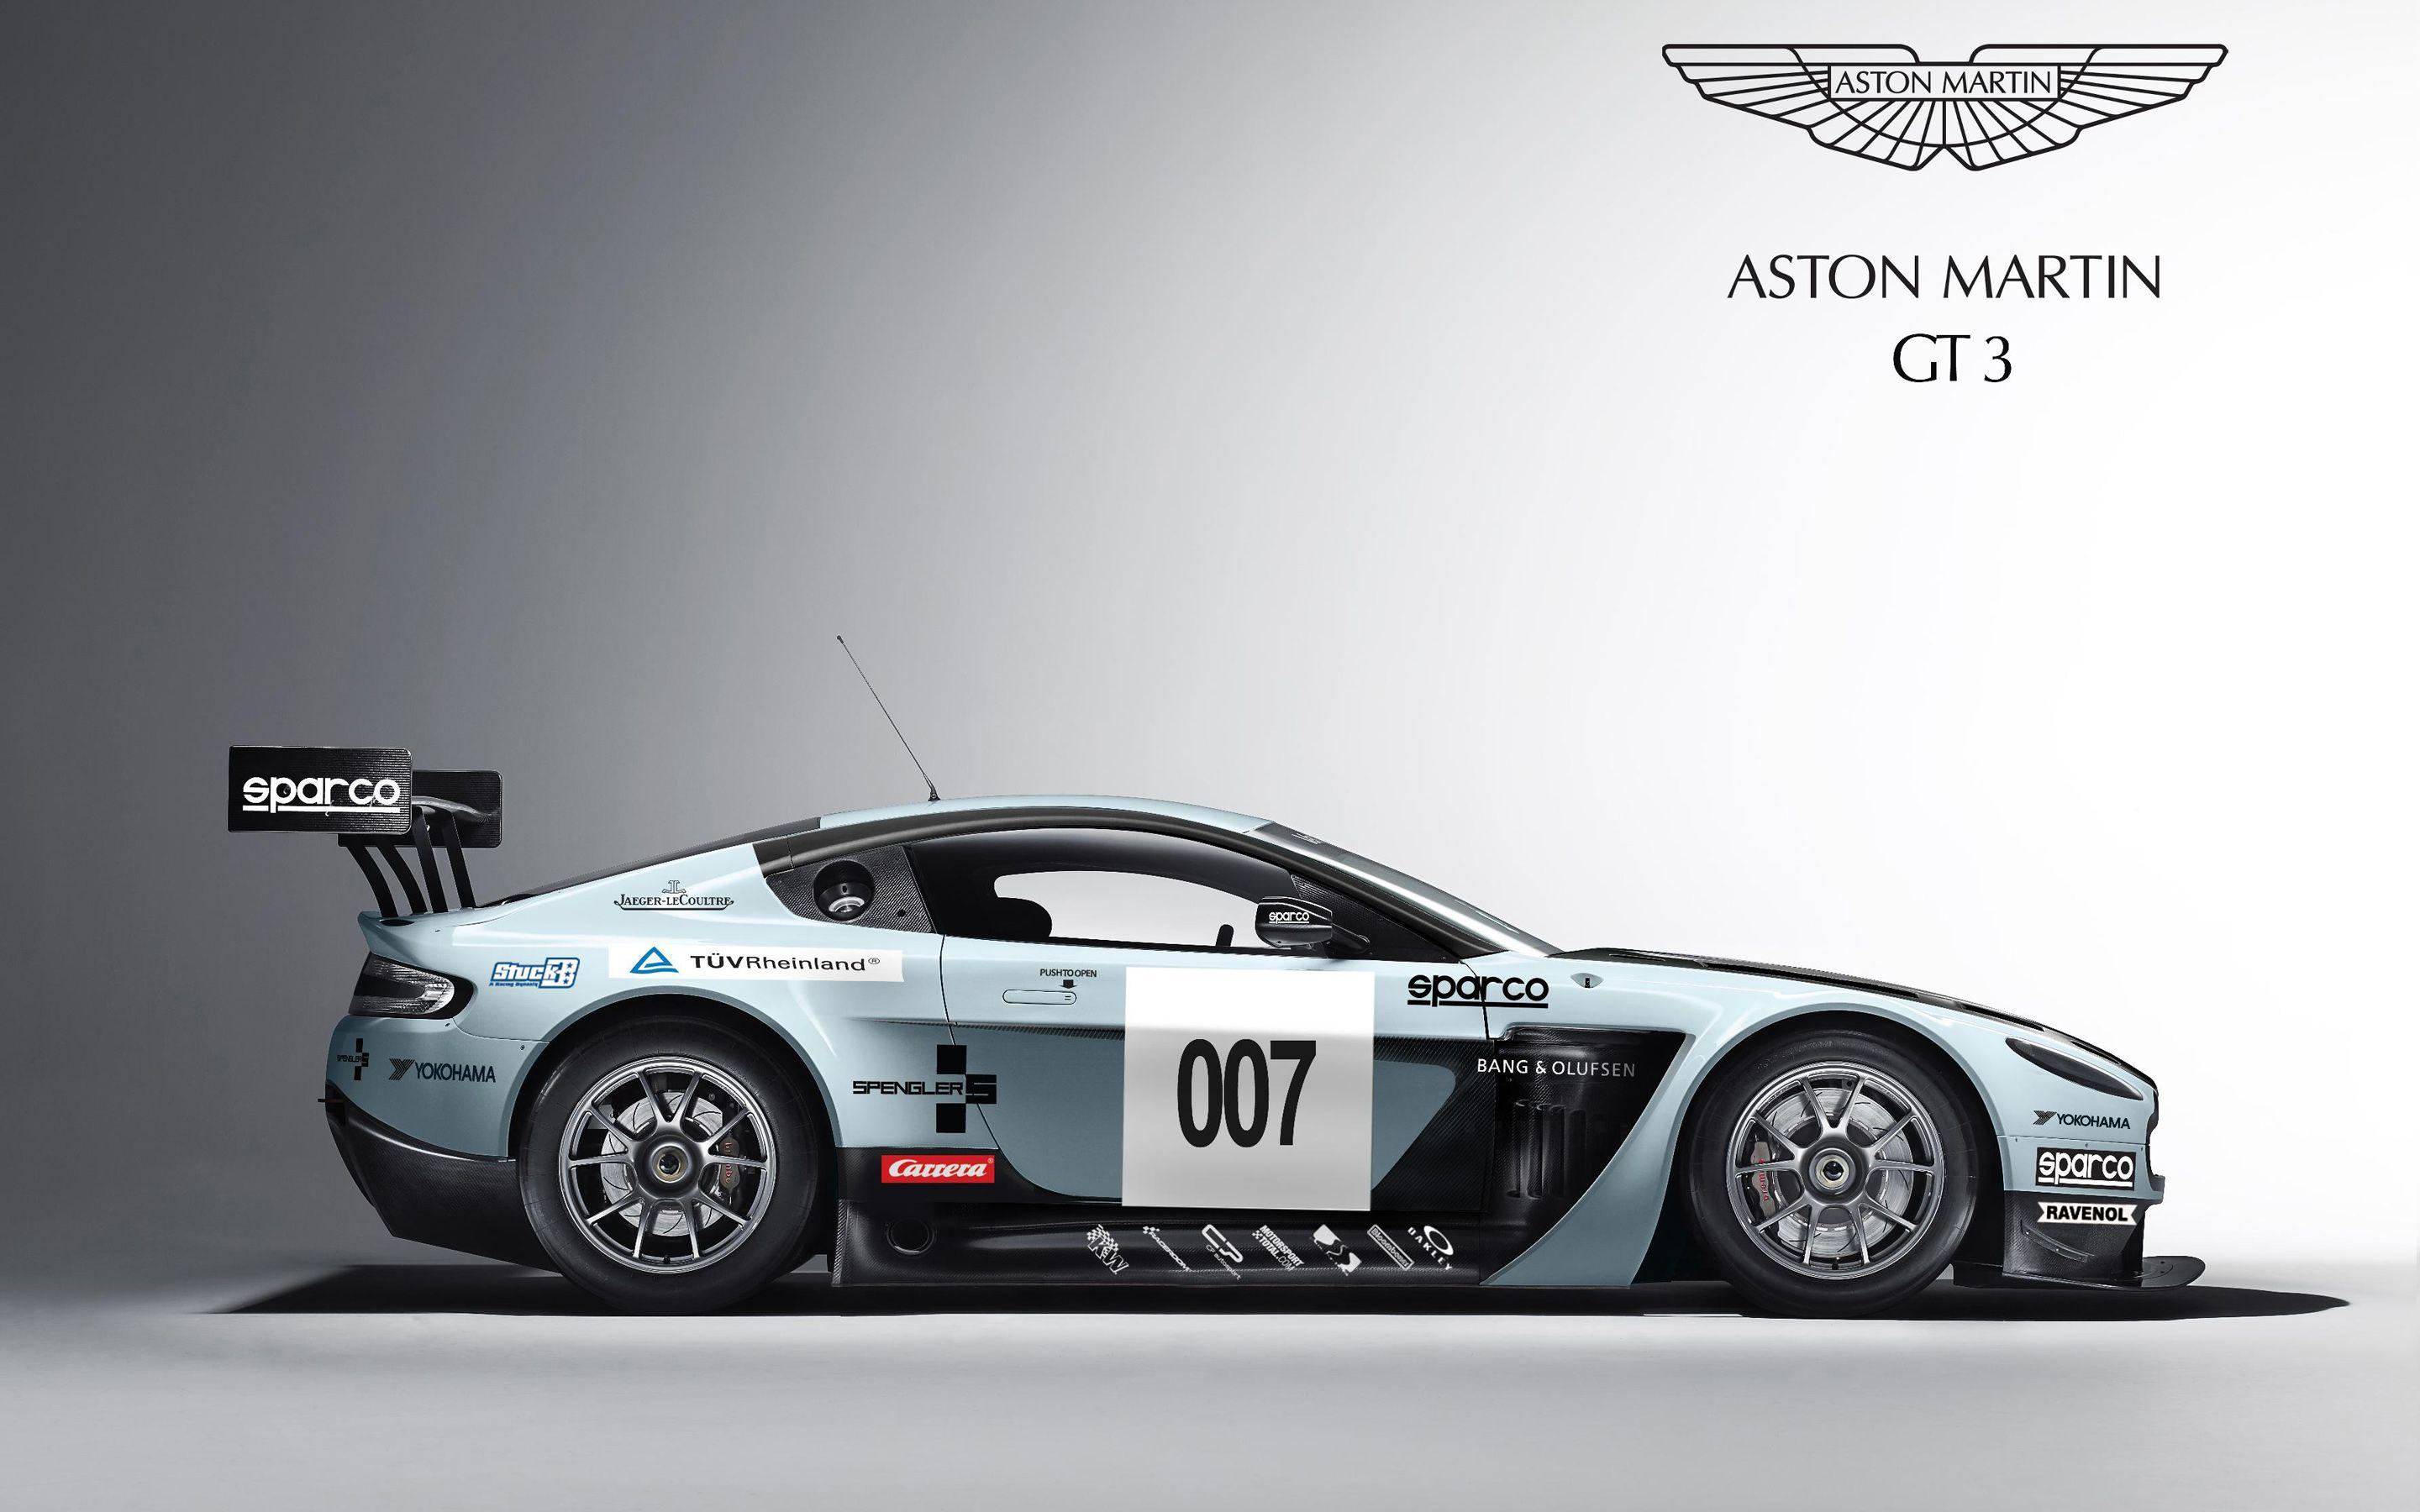 Aston Martin V12 Vantage GT3 Wallpapers